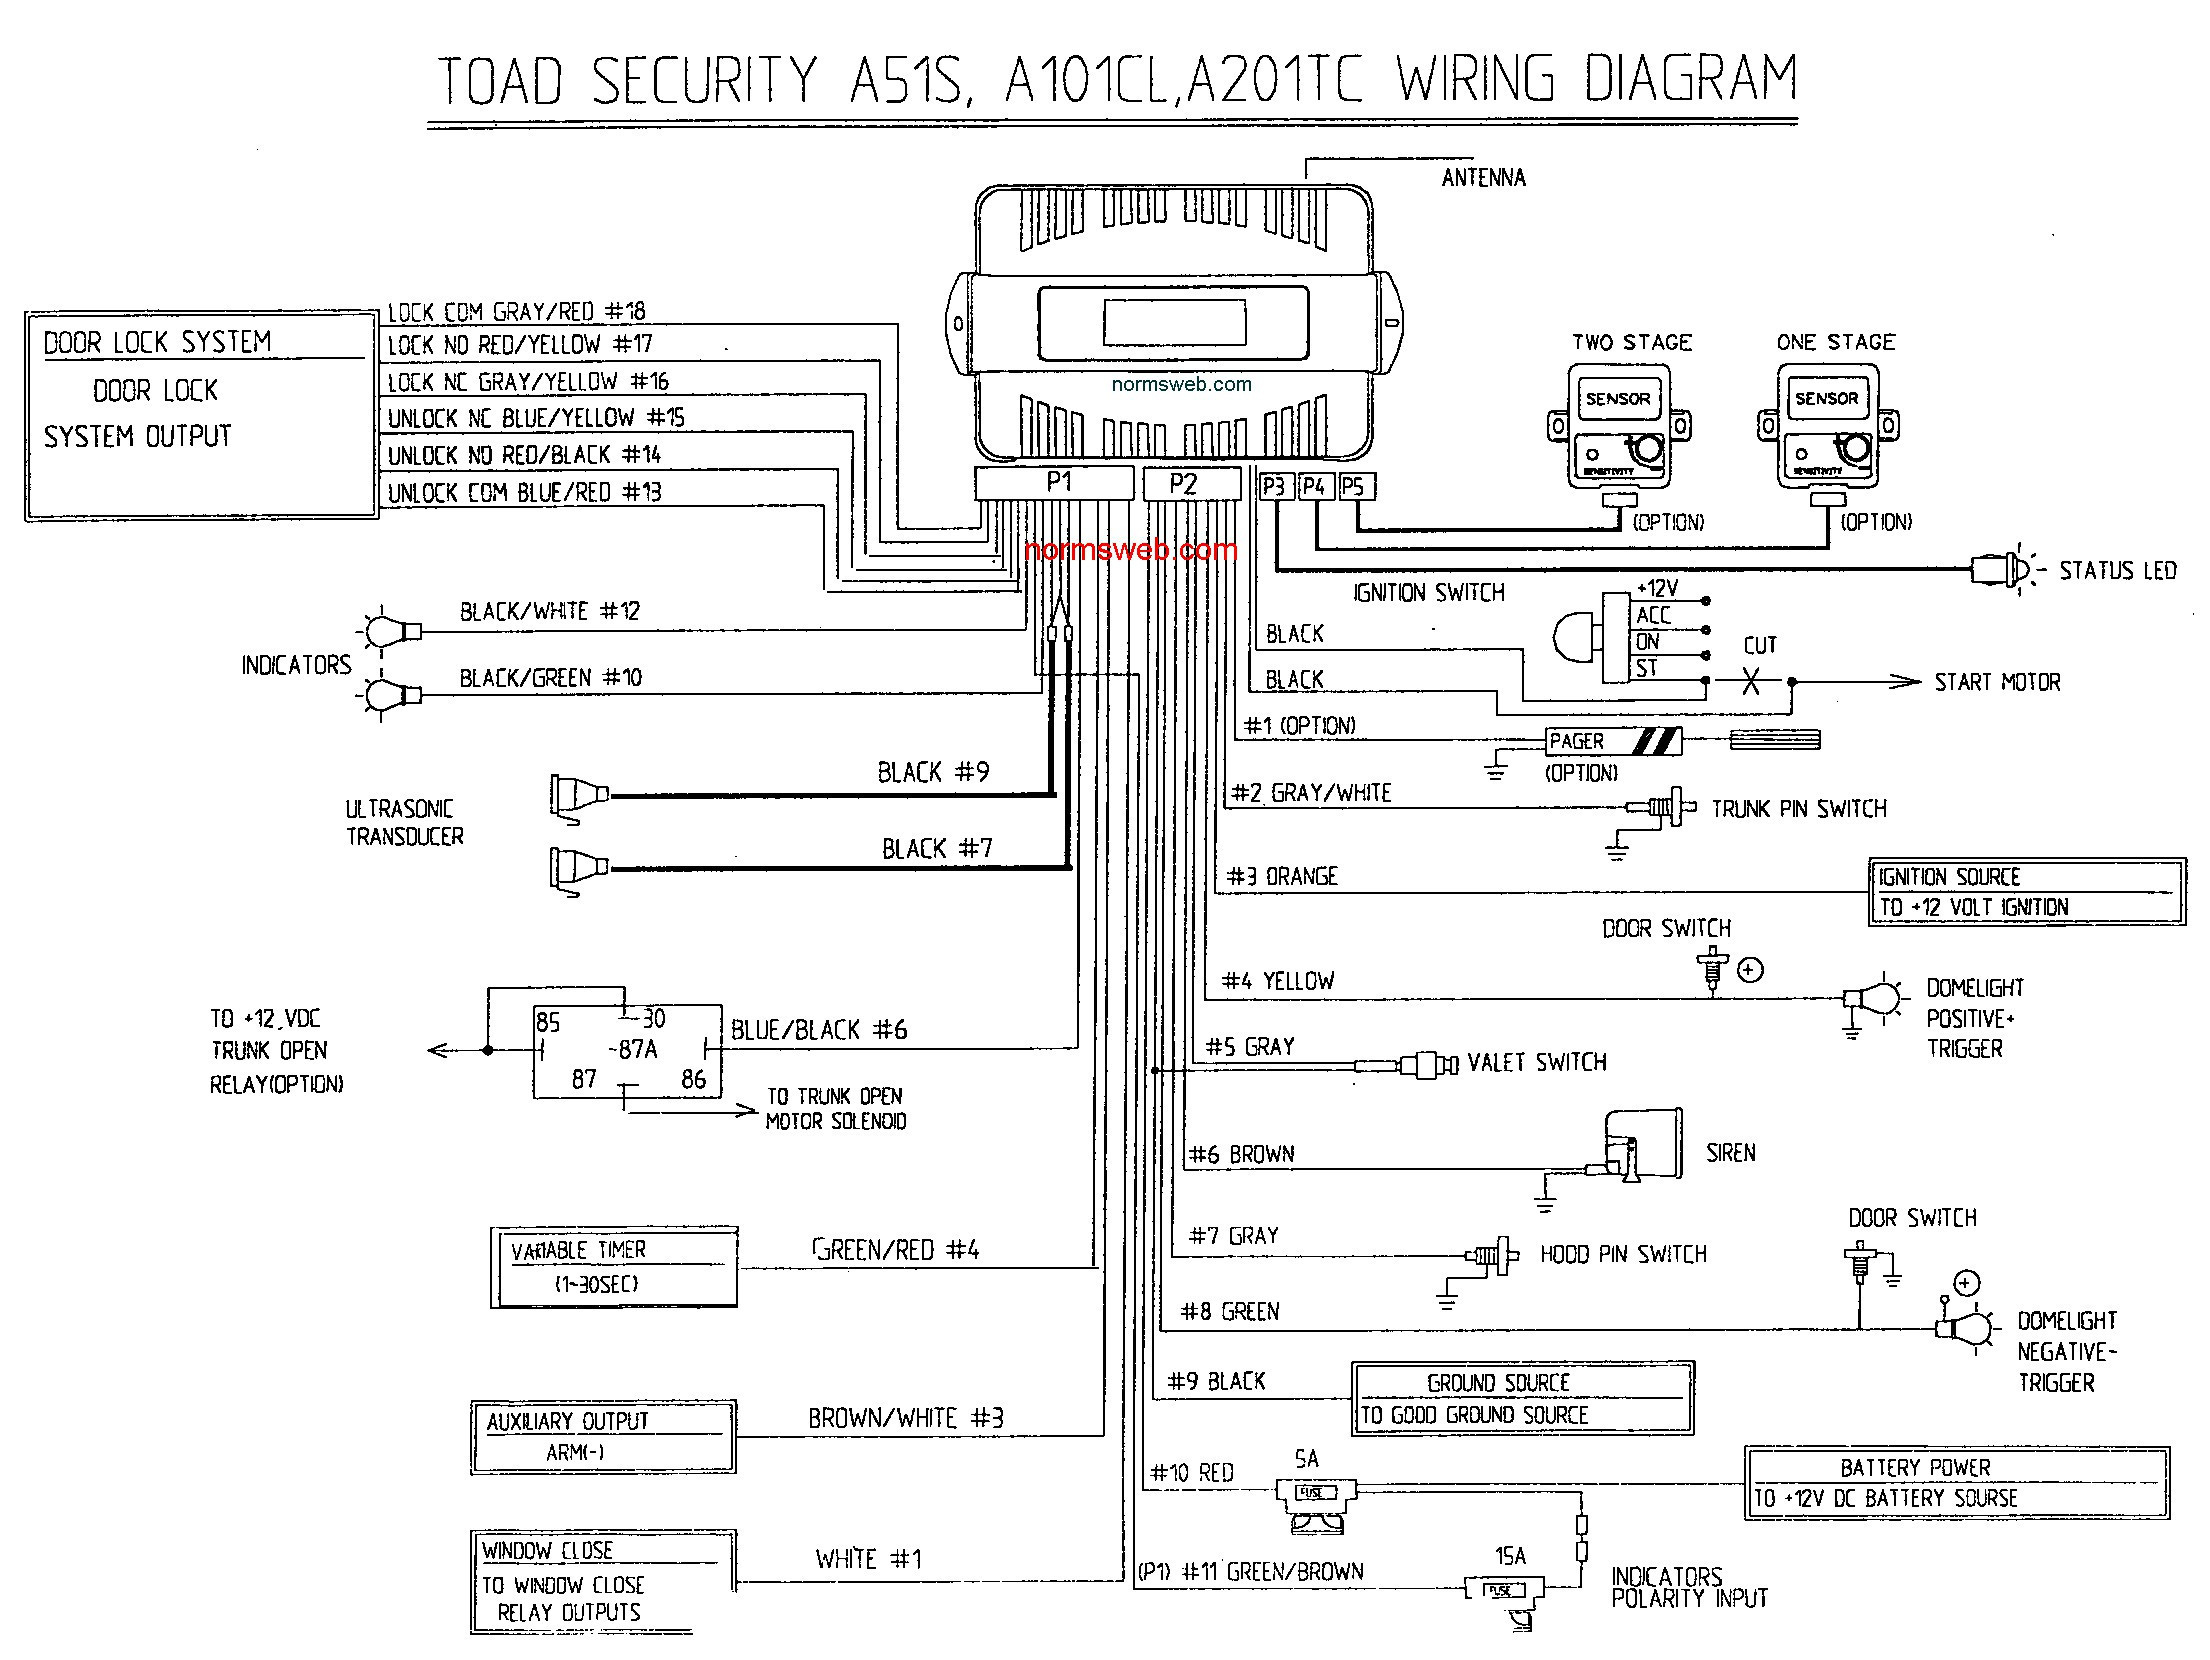 plc car alarm wiring diagram viper 5305v wiring diagram download viper 600 car alarm wiring diagram